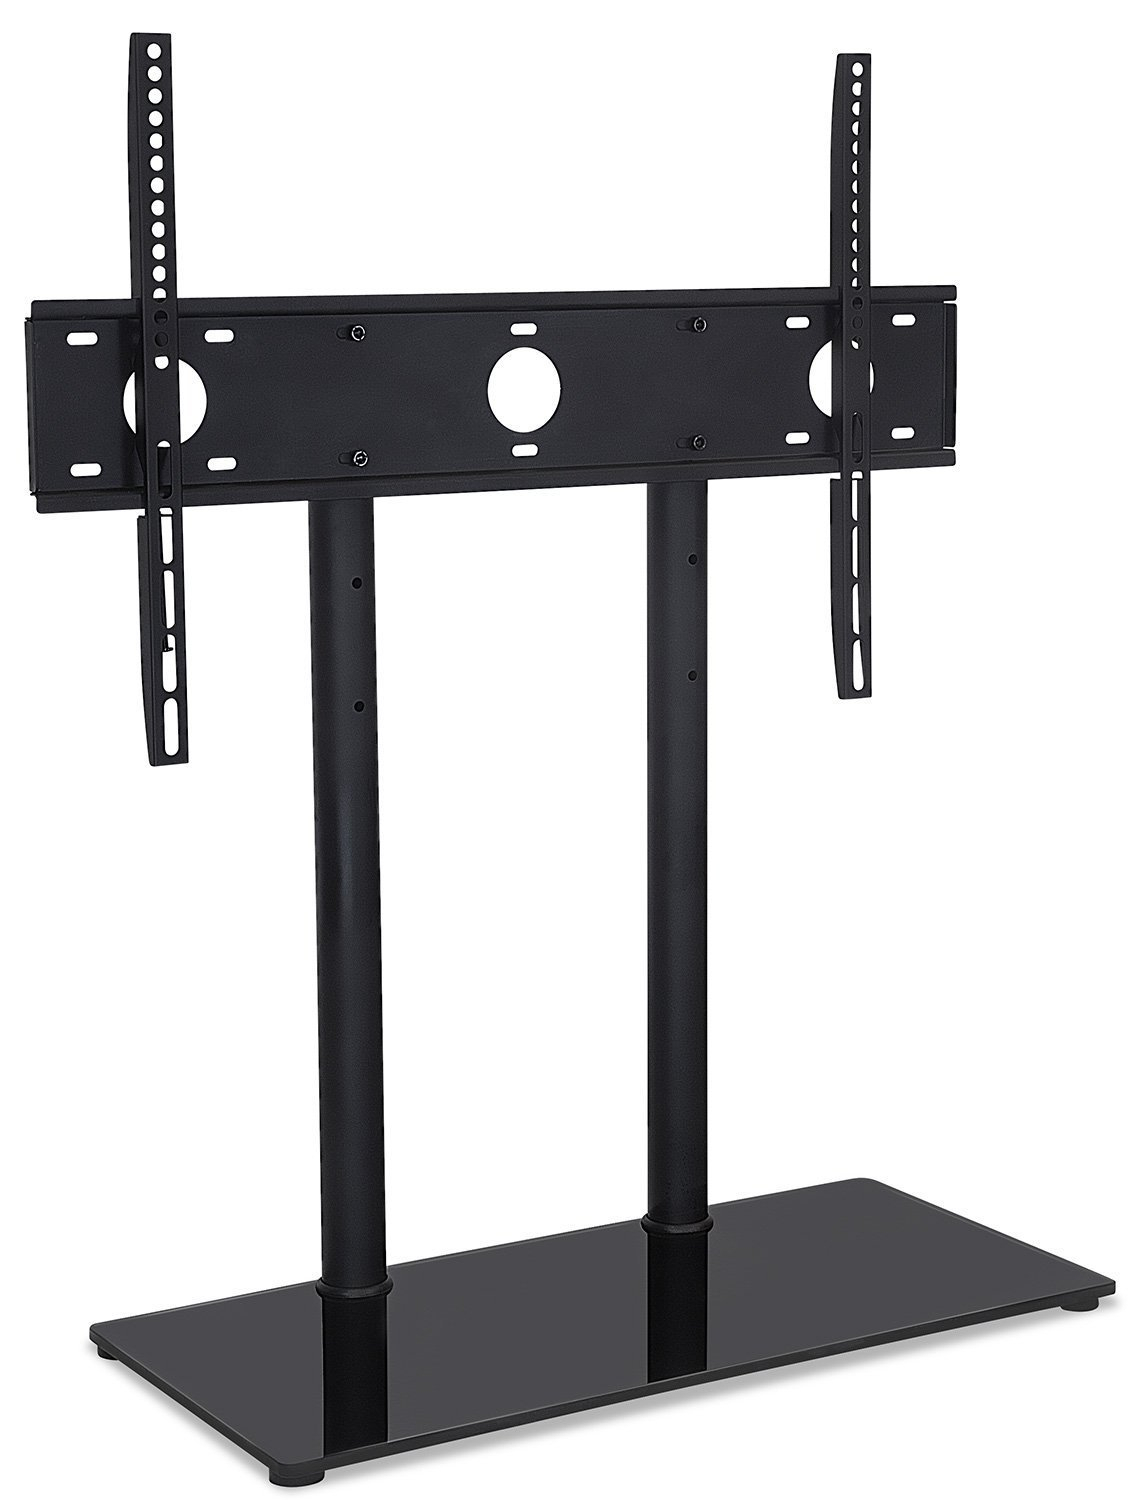 Mount It Universal Tabletop Tv Stand And Av Media Fixed Desktop intended for Mayfield Plasma Console Tables (Image 11 of 30)